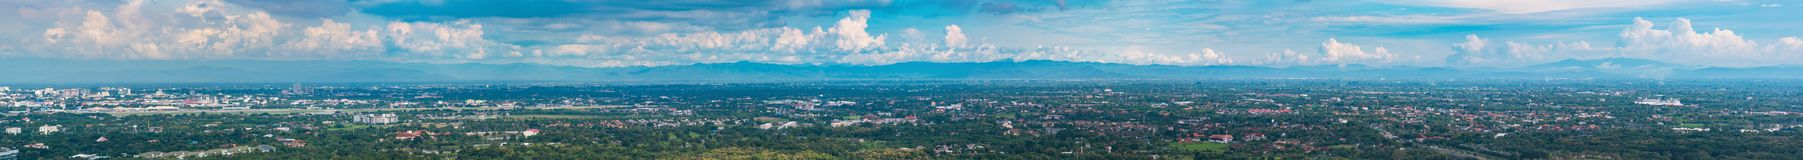 Panorama image of Chiang Mai province,Thailand. Stock Image